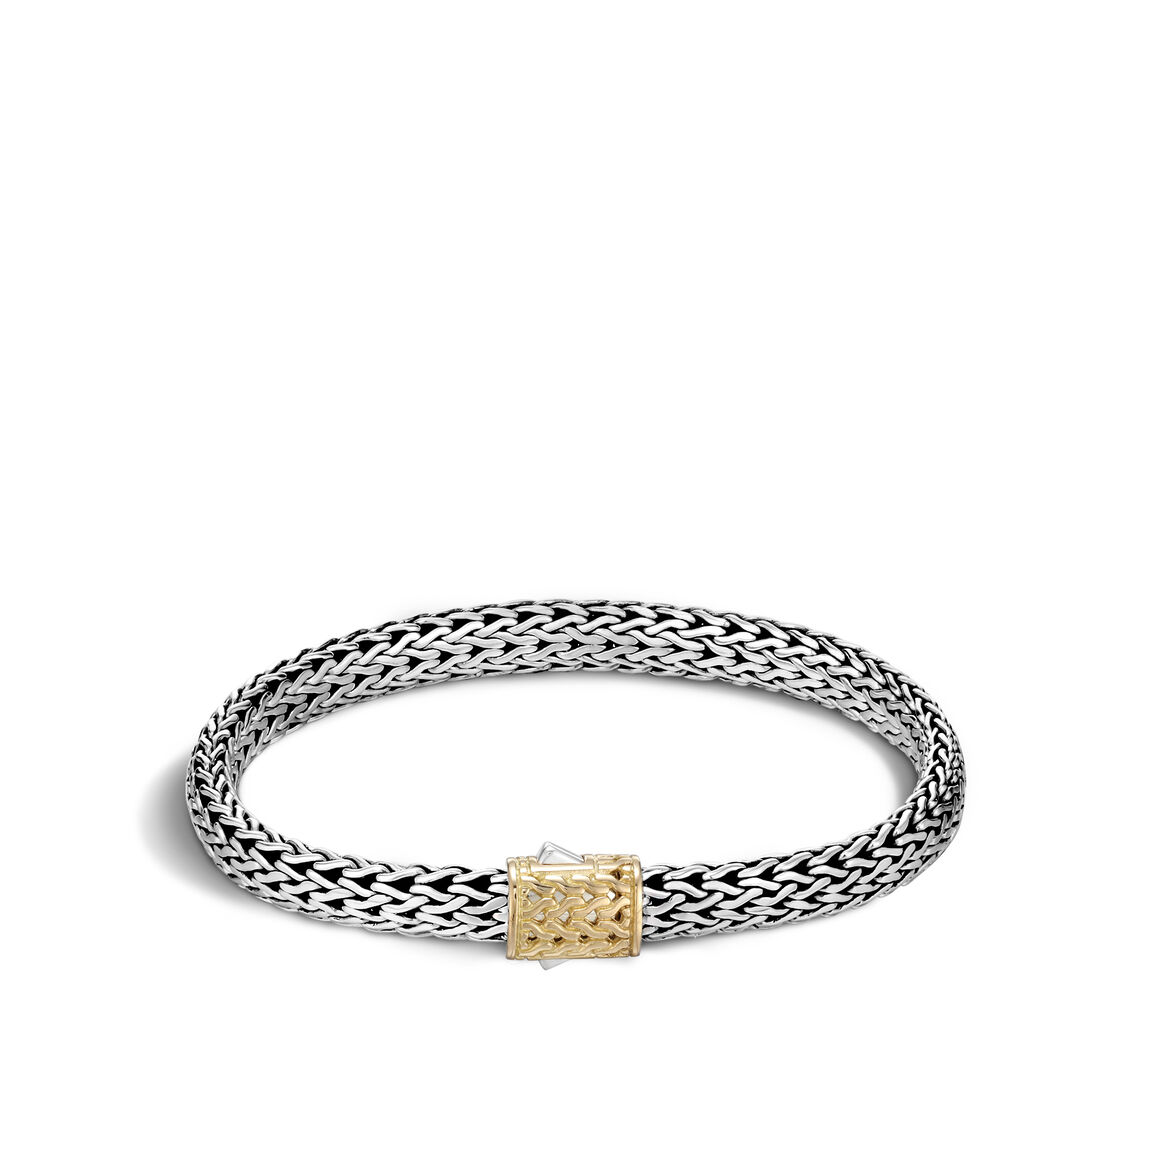 Classic Chain 6.5MM Bracelet in Silver and 18K Gold